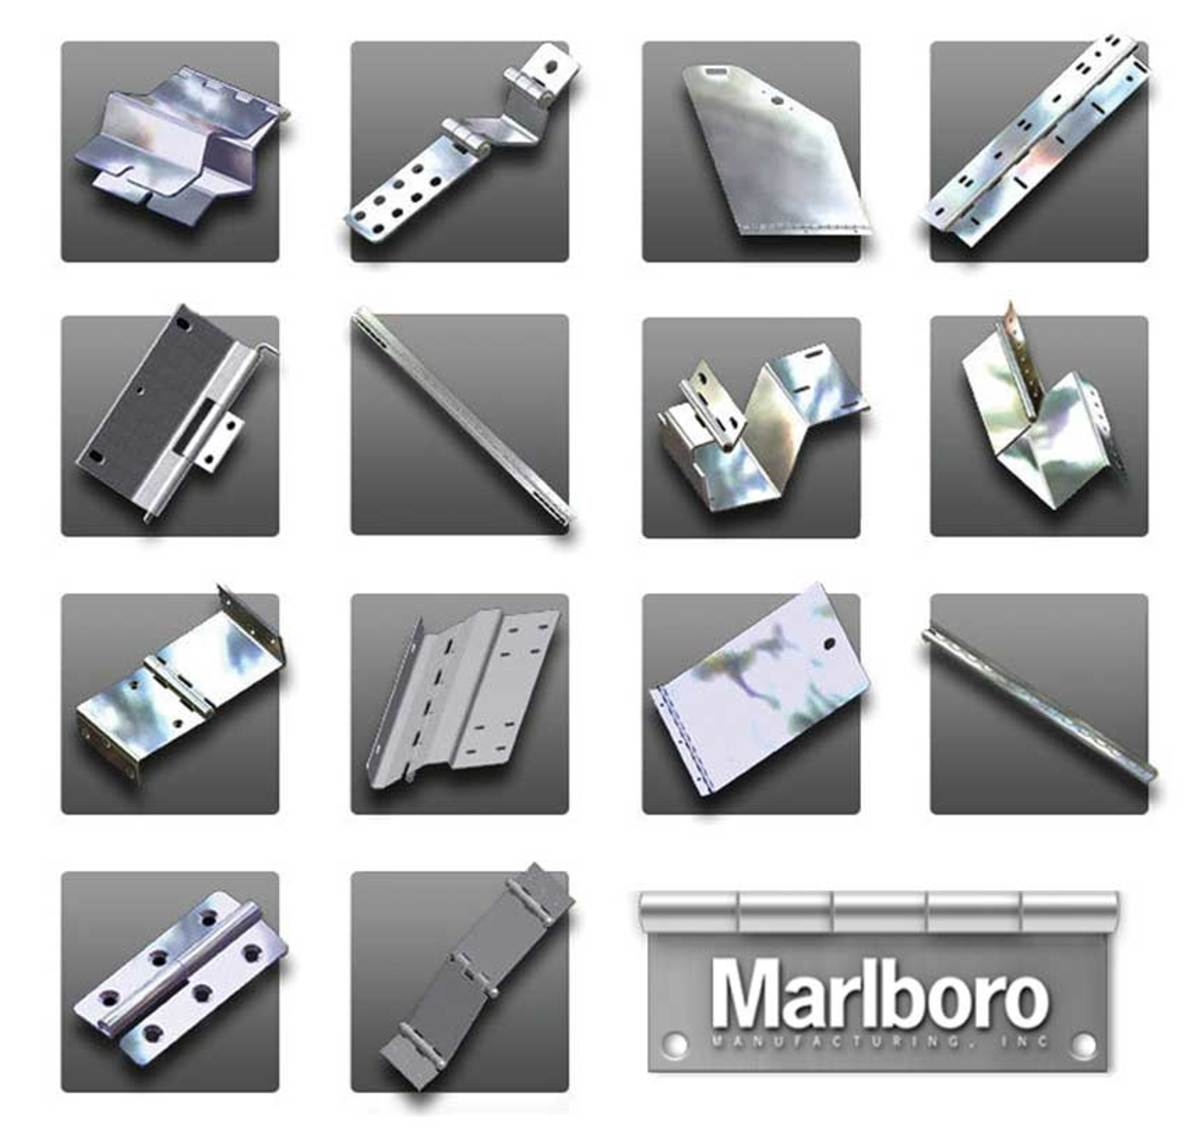 Speciality hinges available from Marlboro Mfg.